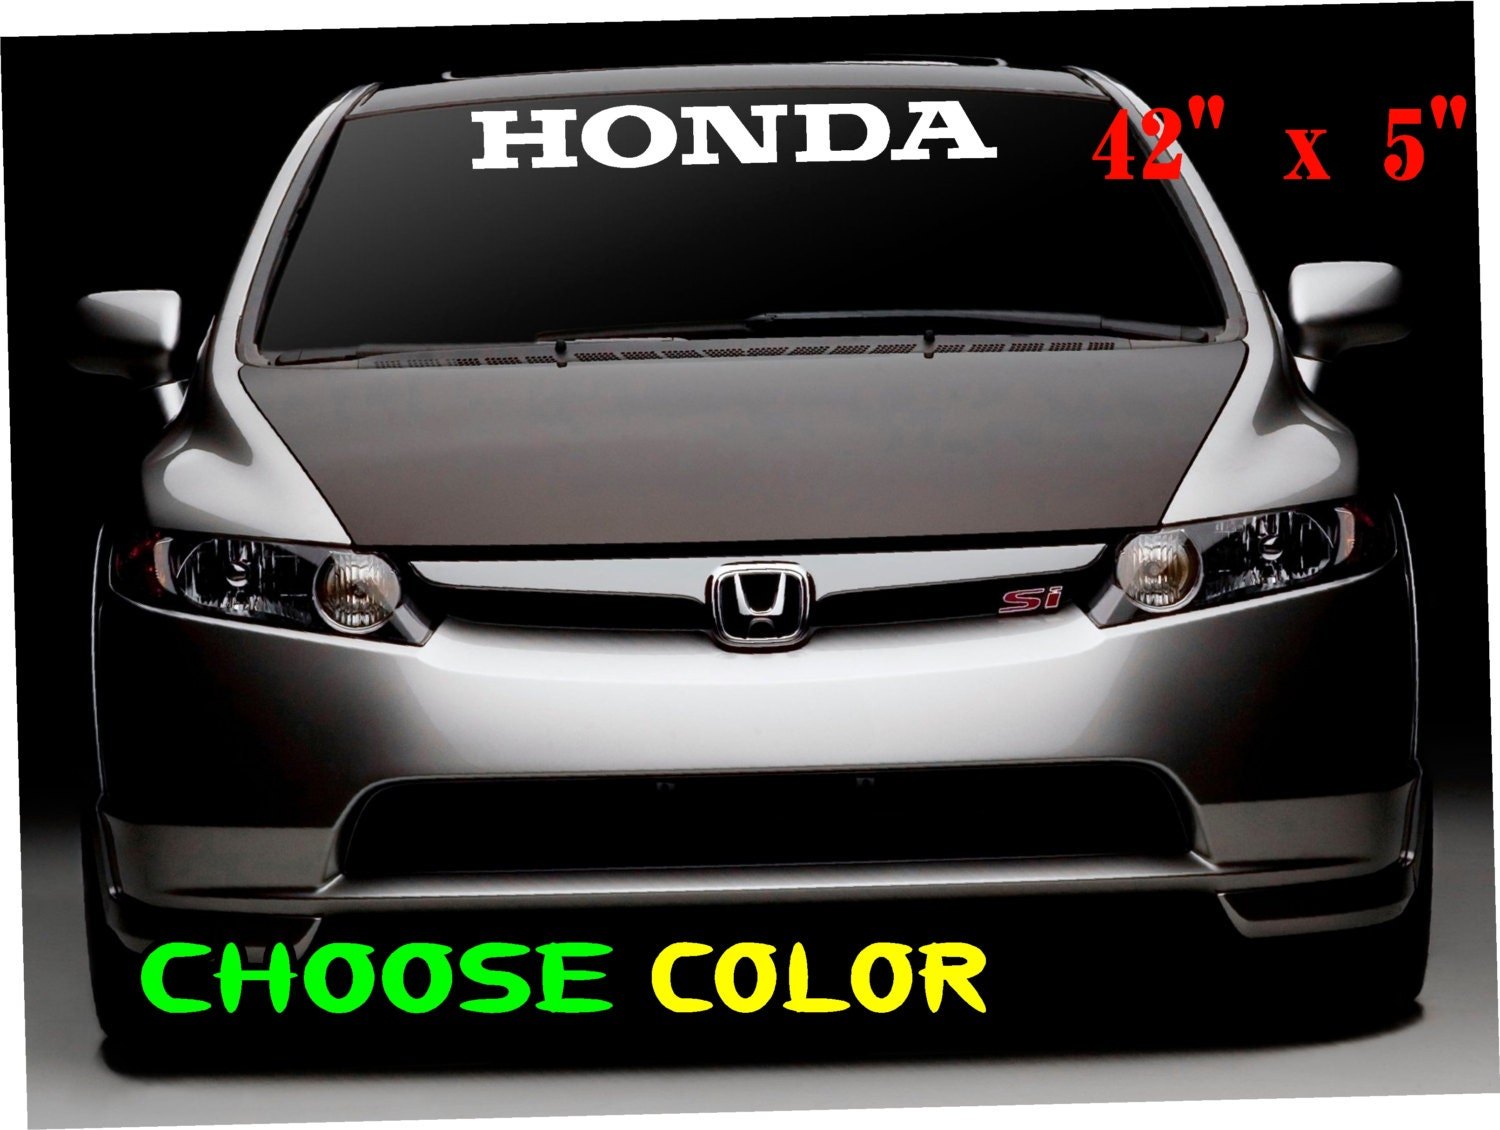 Honda logo windshield car decal vinyl sticker race honda etsy